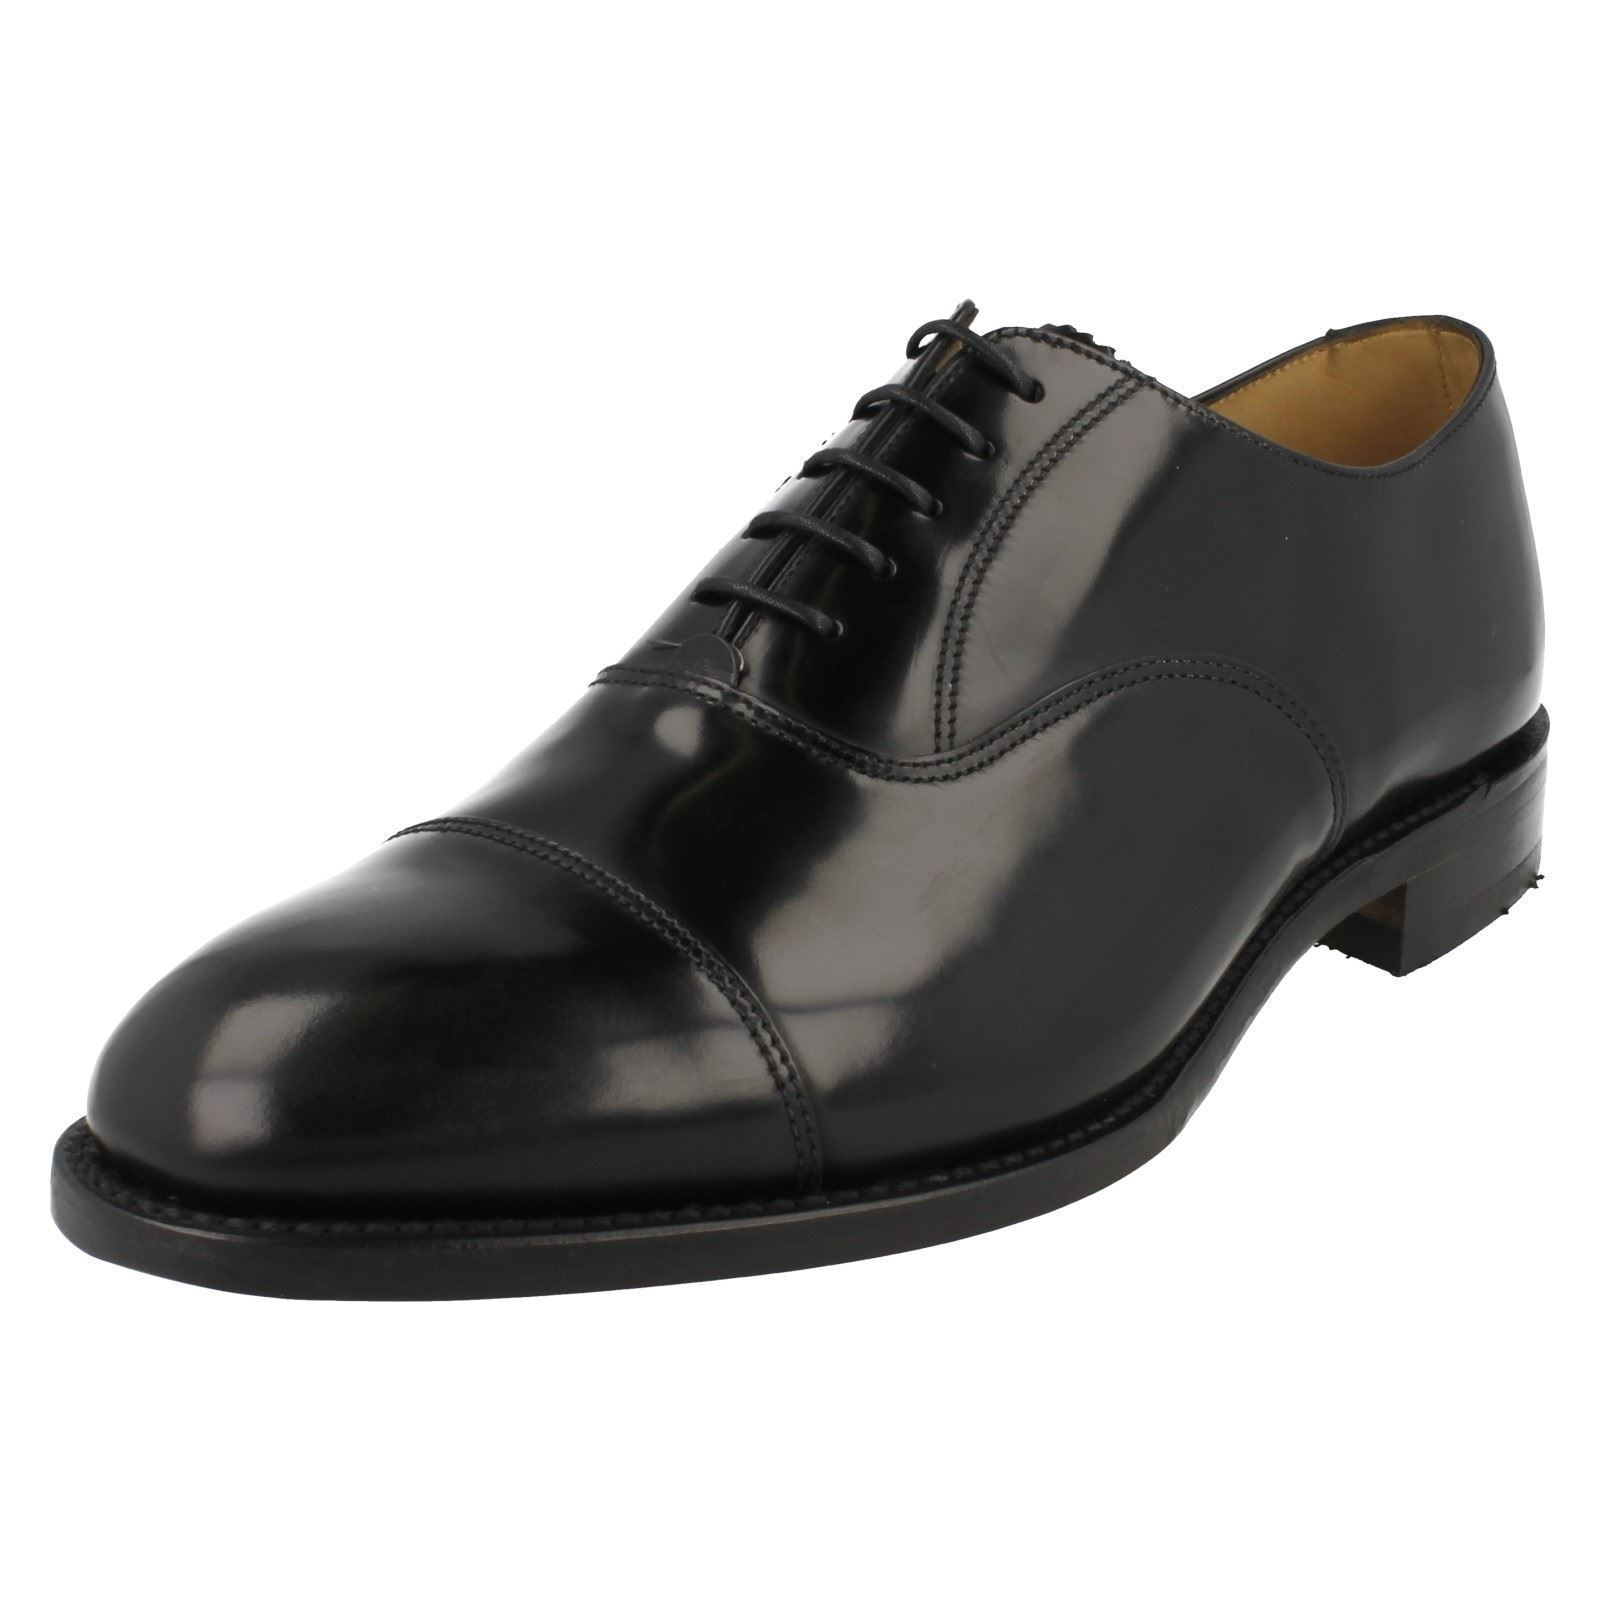 MENS SMART LOAKE BLACK POLISHED LEATHER LACE UP F FIT SMART MENS FORMAL WORK SHOES 747B 27154e